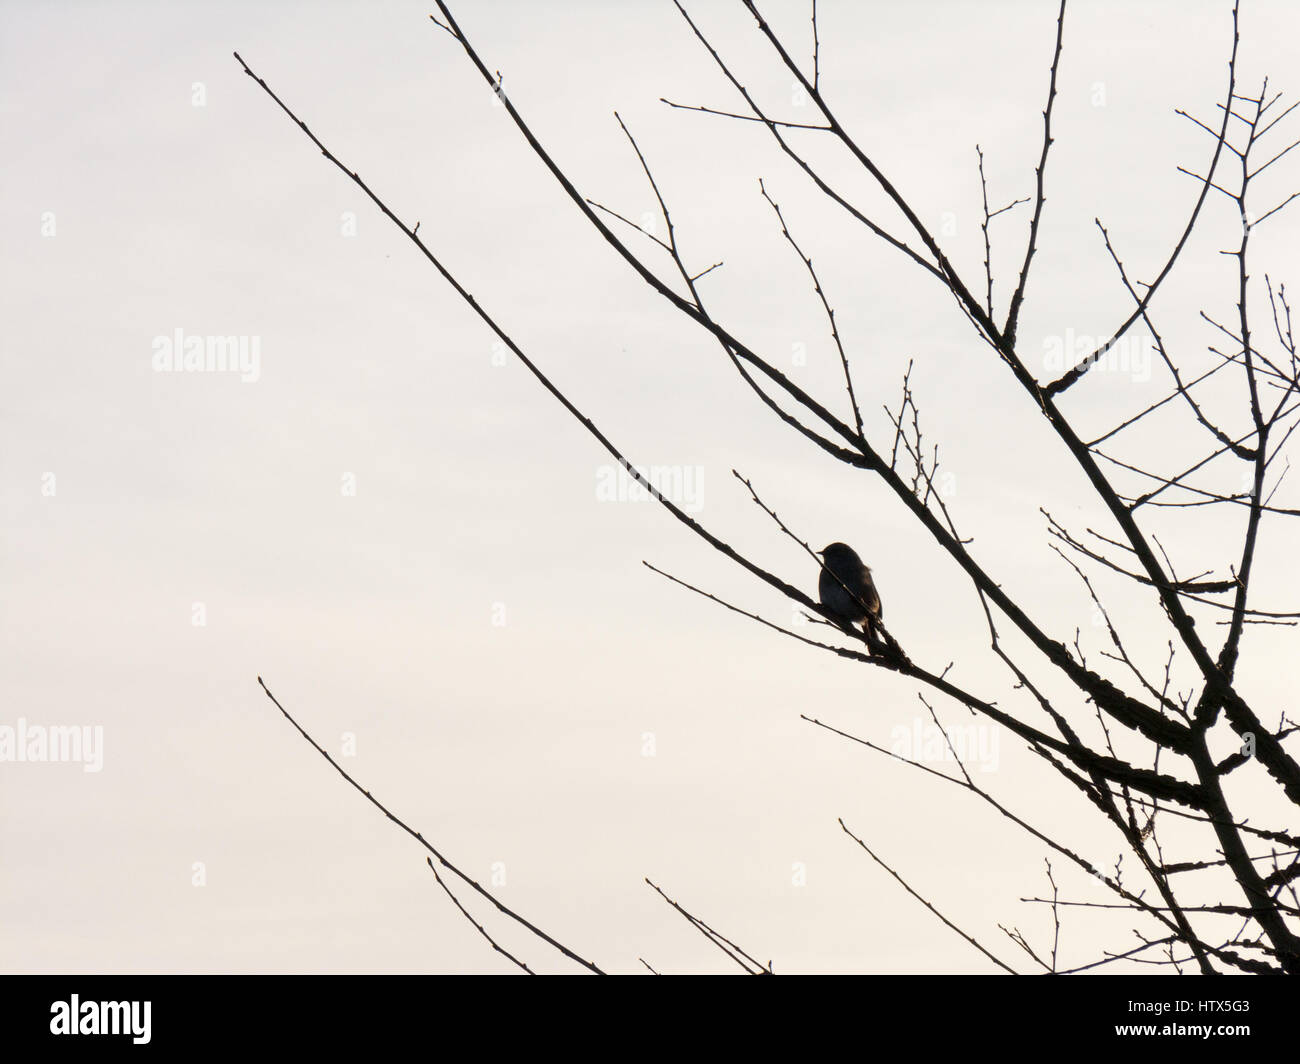 A bird sits in the tree at sunset. - Stock Image